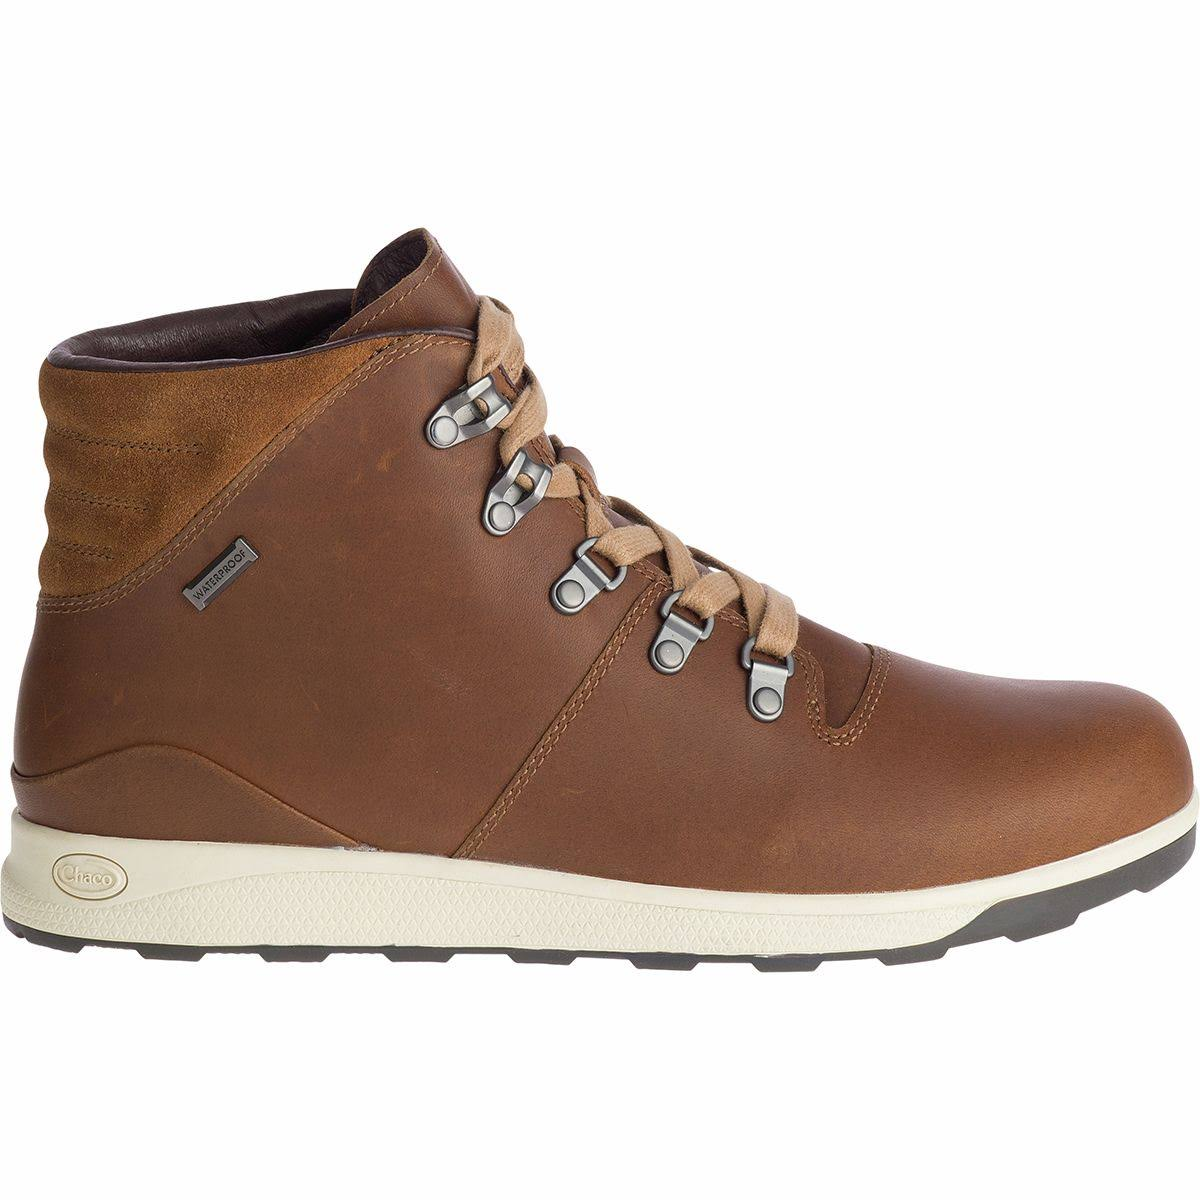 Chaco Men's Frontier Waterproof Boot - 11 - Toffee